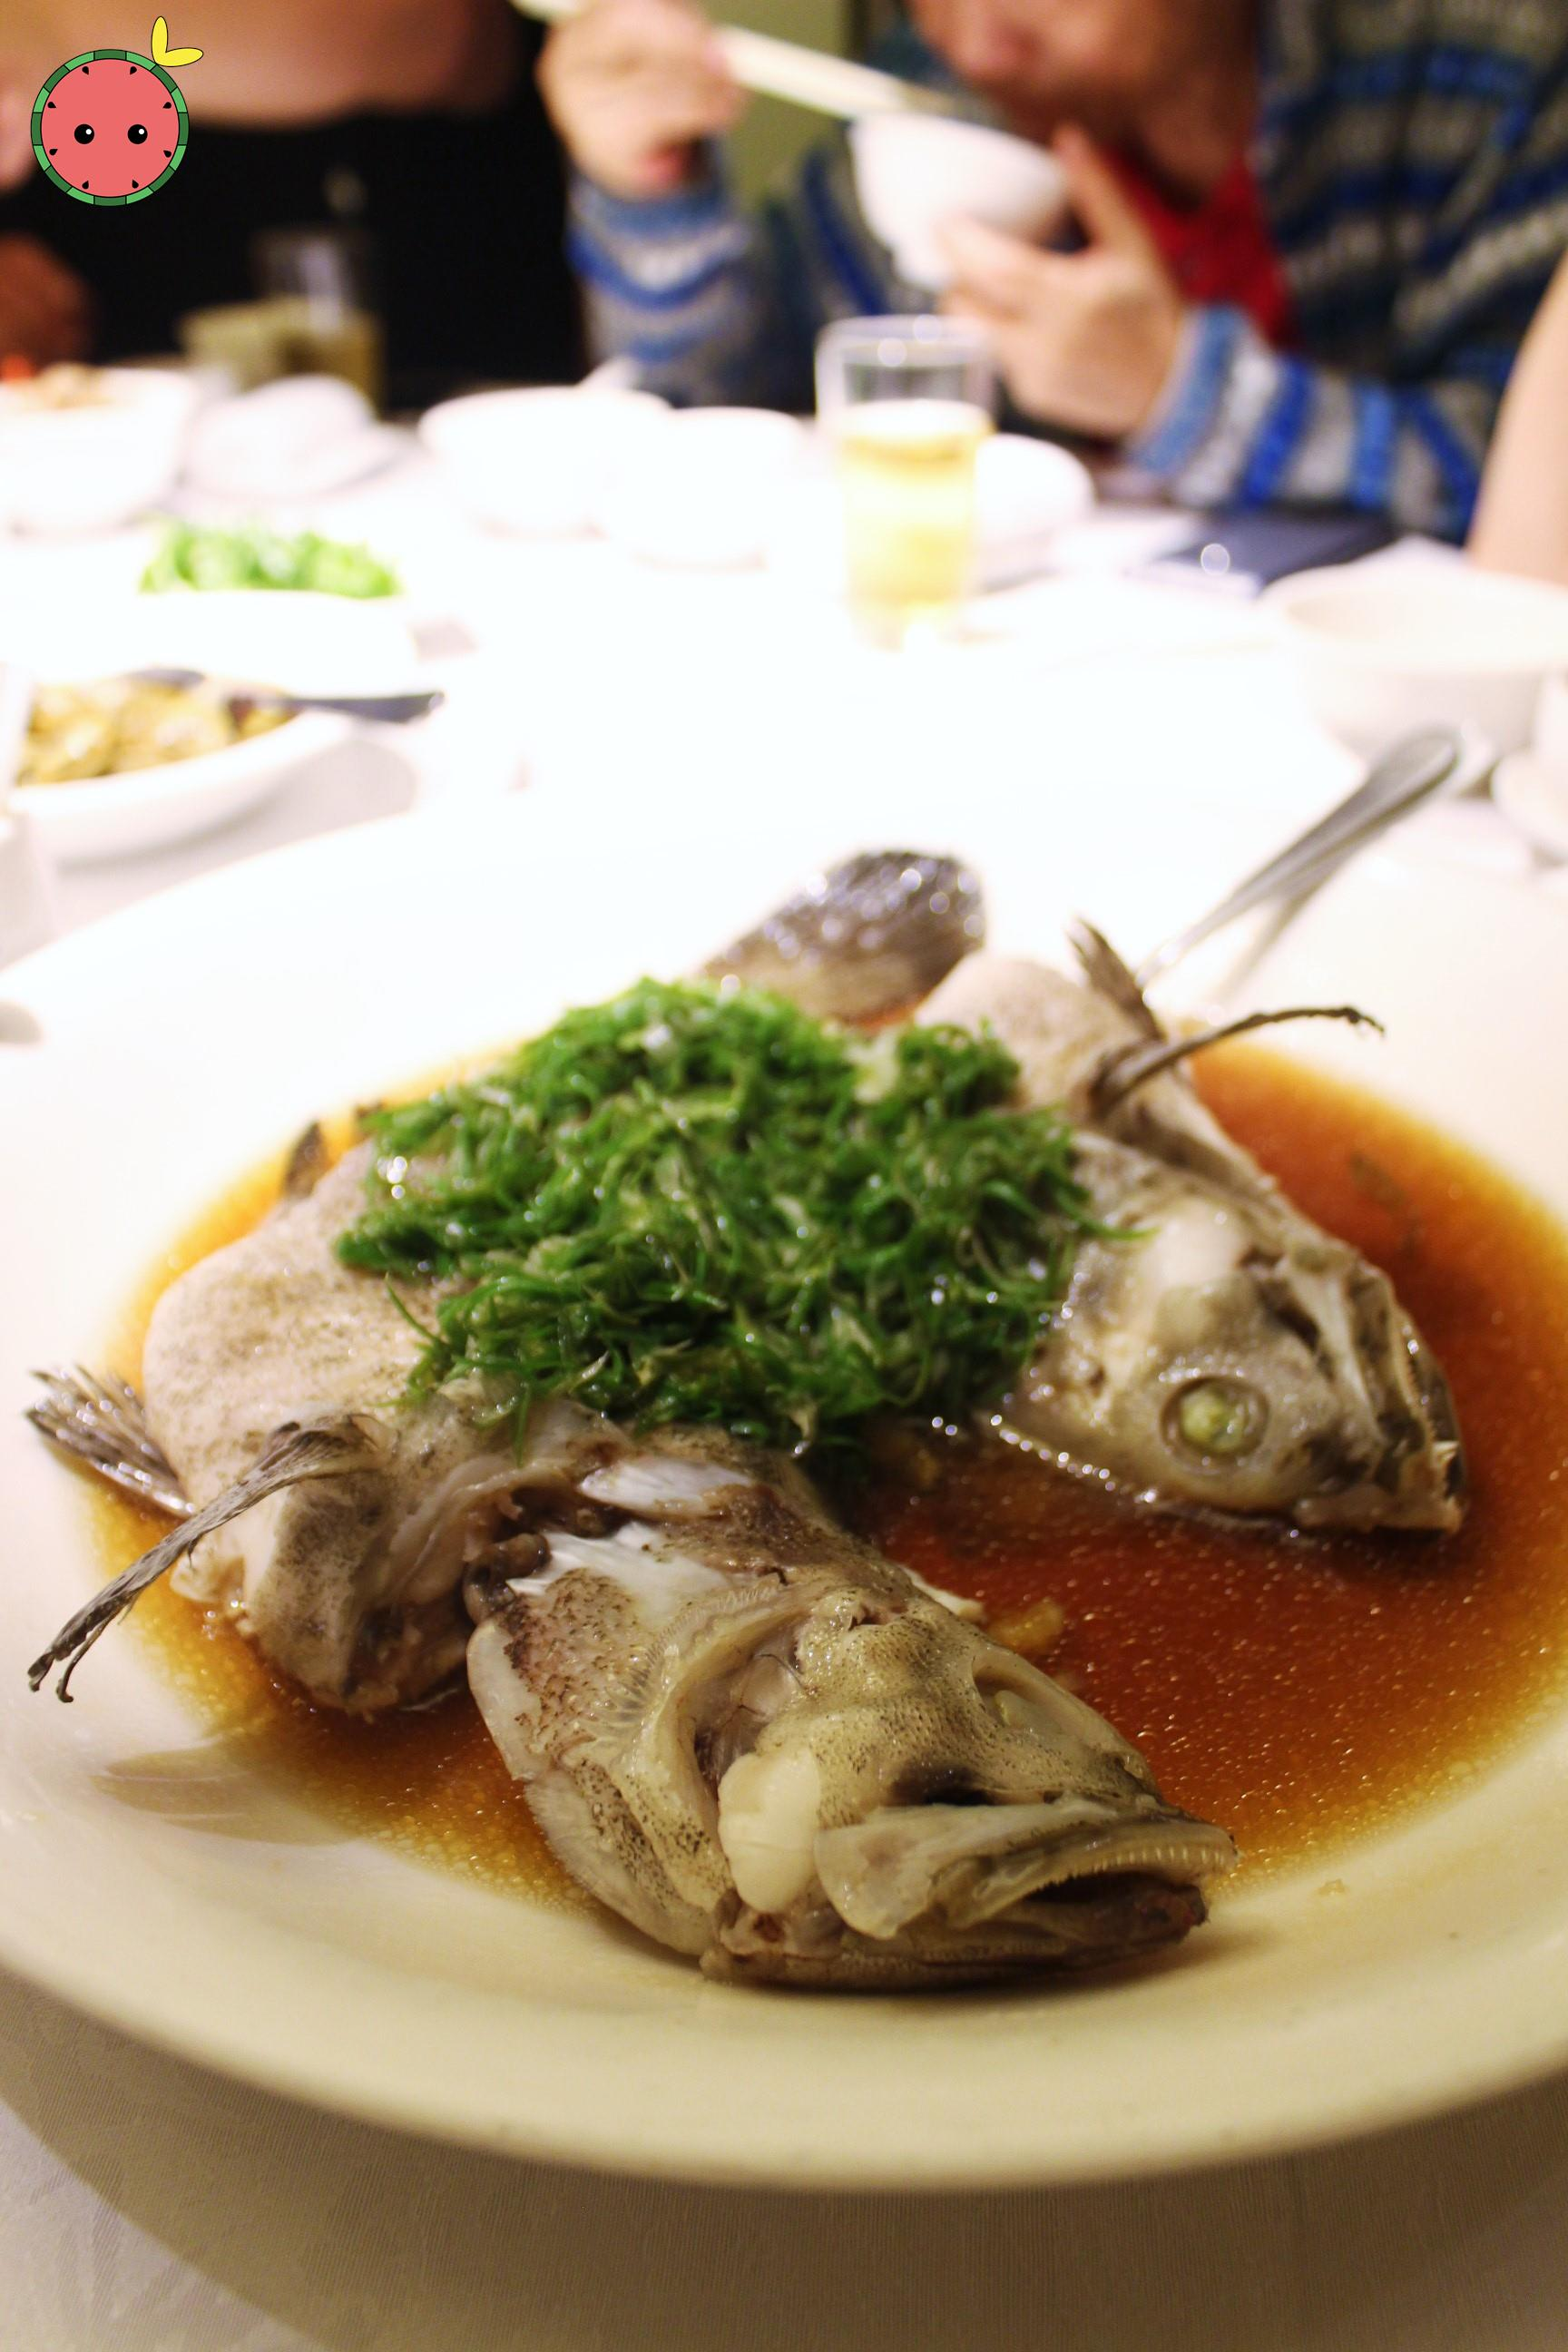 Live-steamed seasonal fish with scallion in soy sauce 葱油活魚